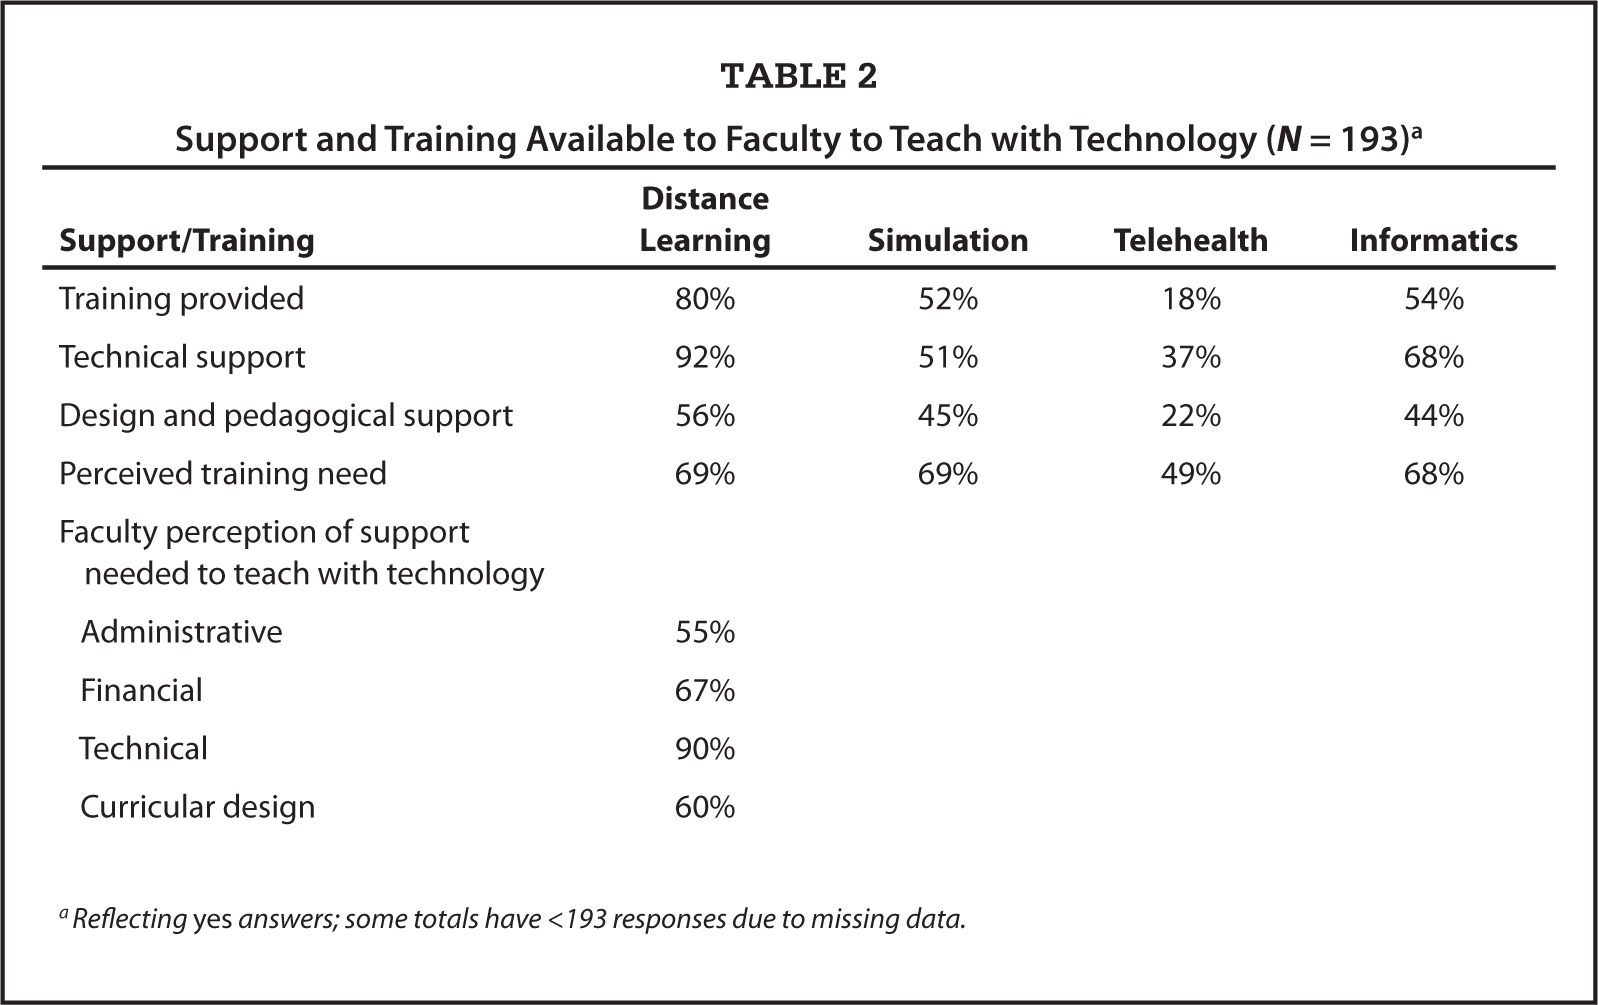 Support and Training Available to Faculty to Teach with Technology (N = 193)a